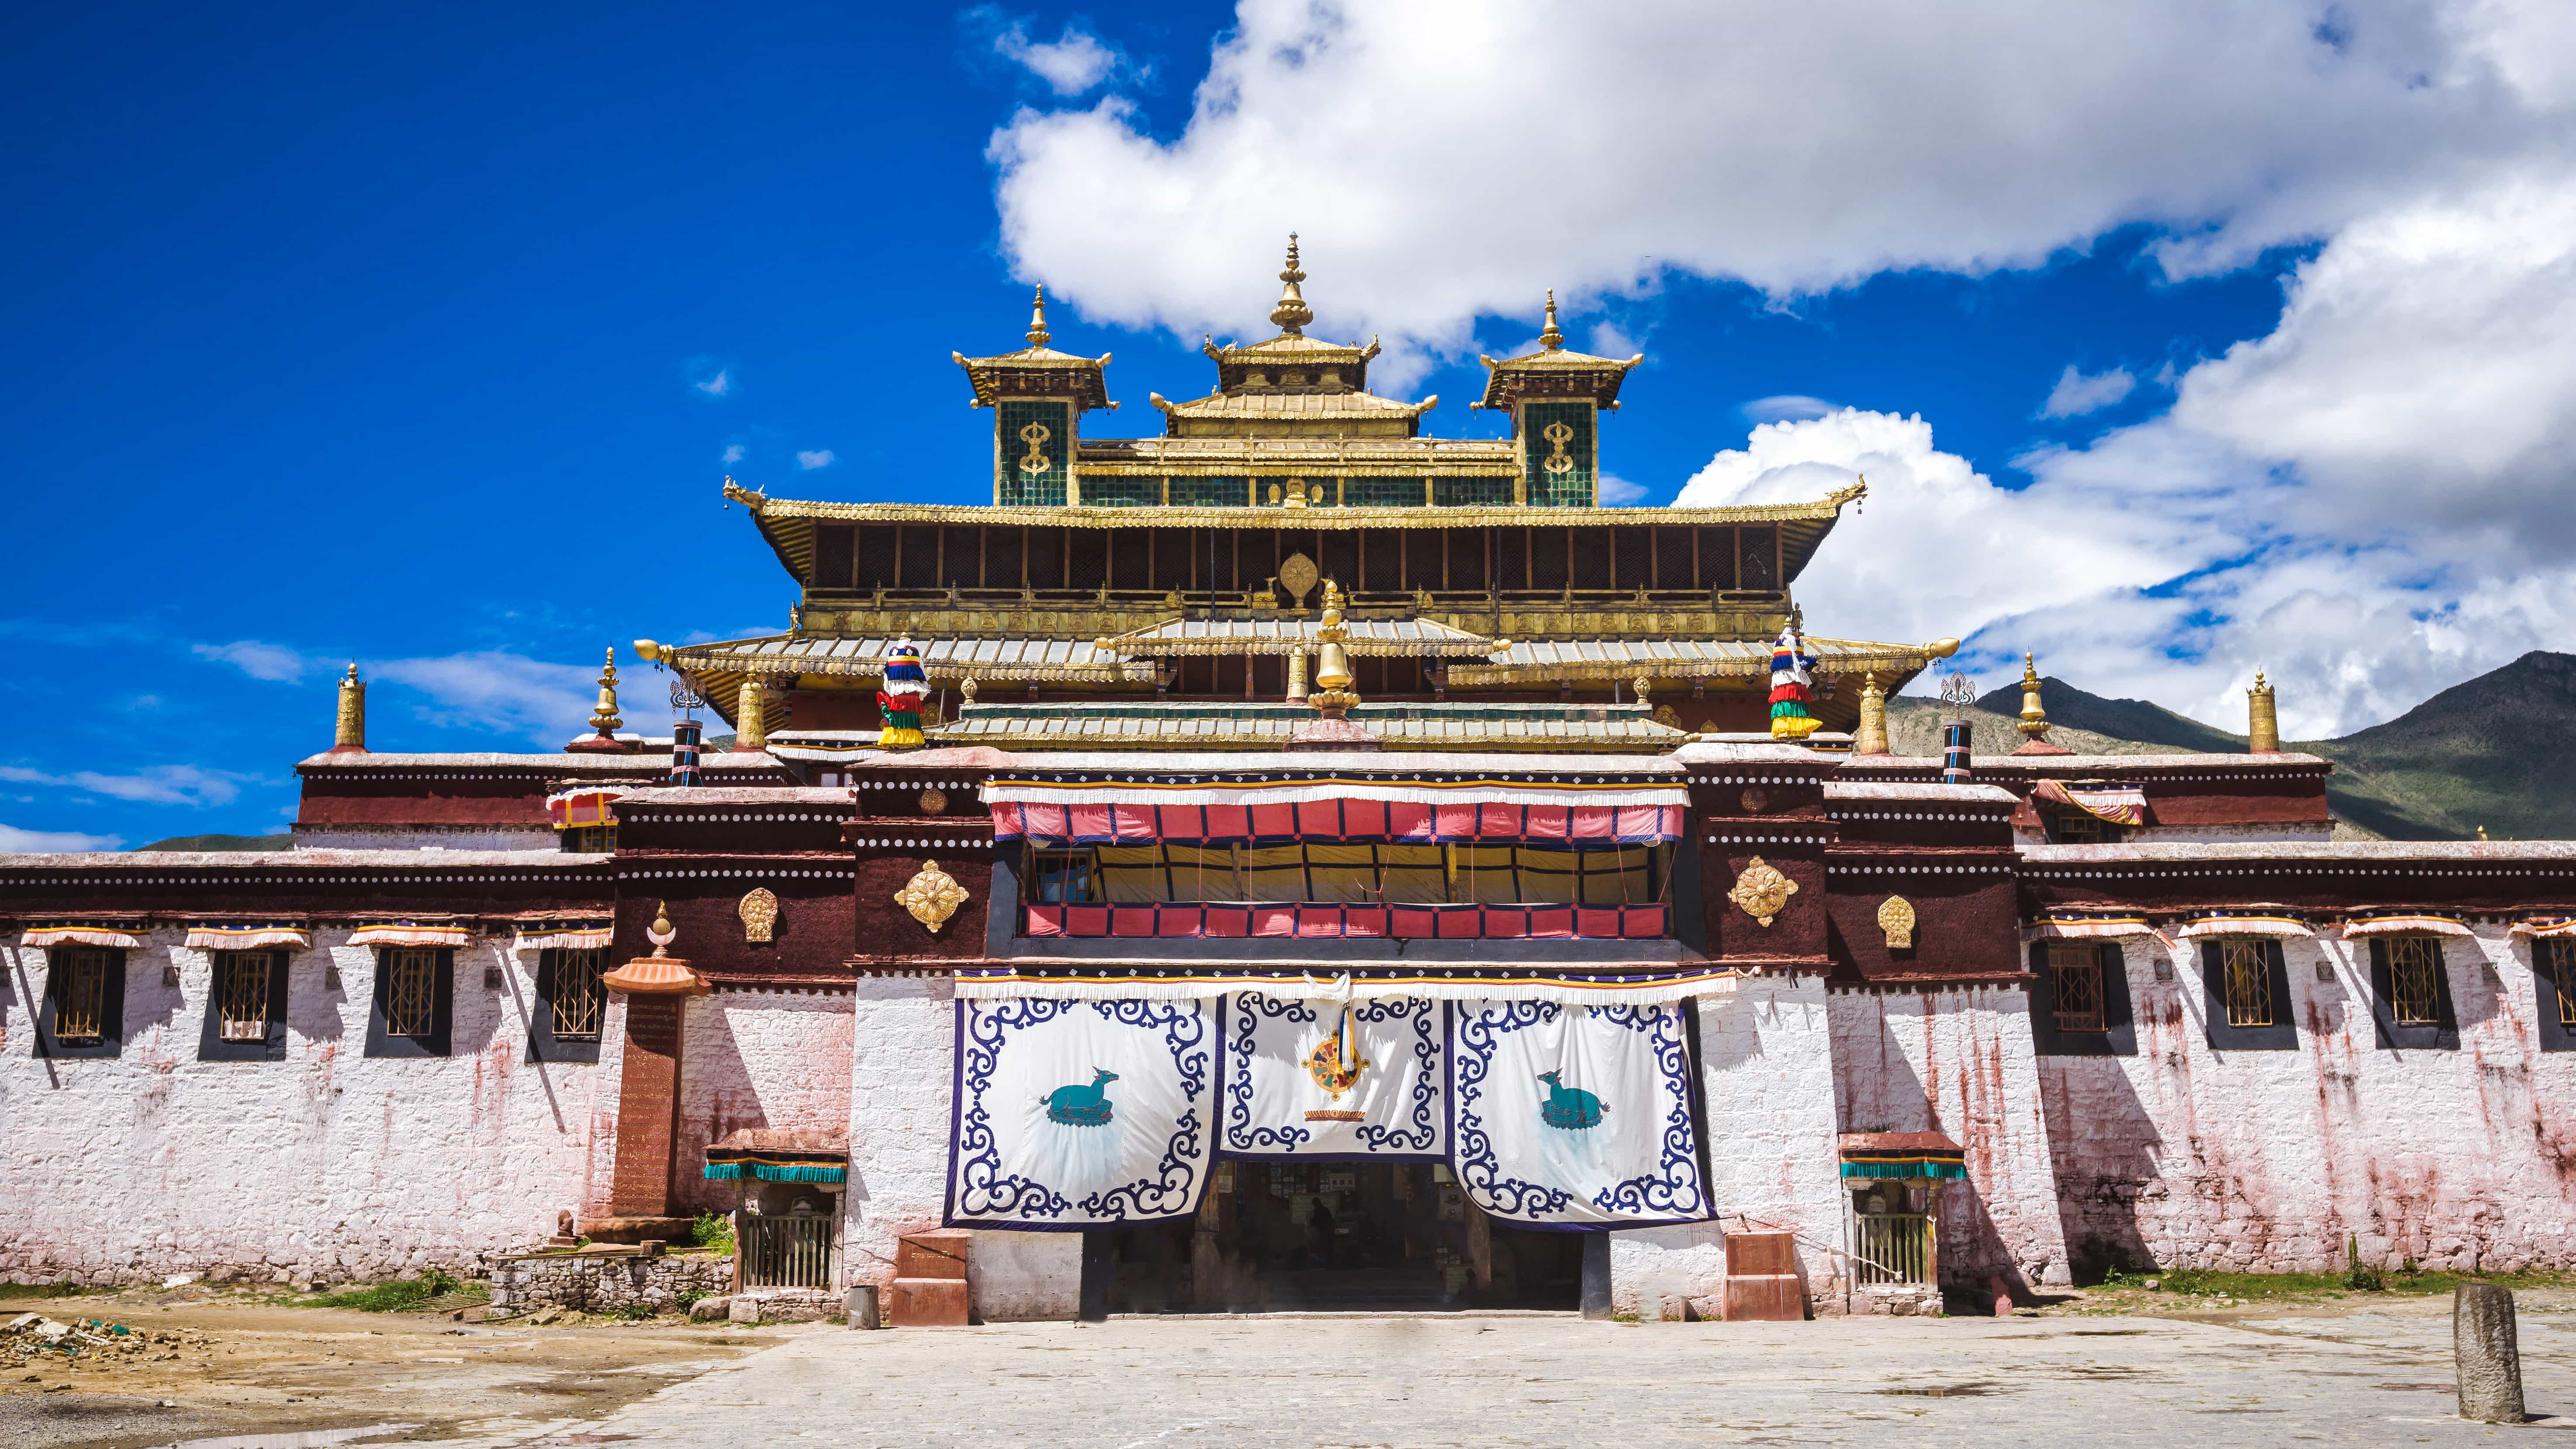 Samye Monastery the first Buddhist monastery in Tibet